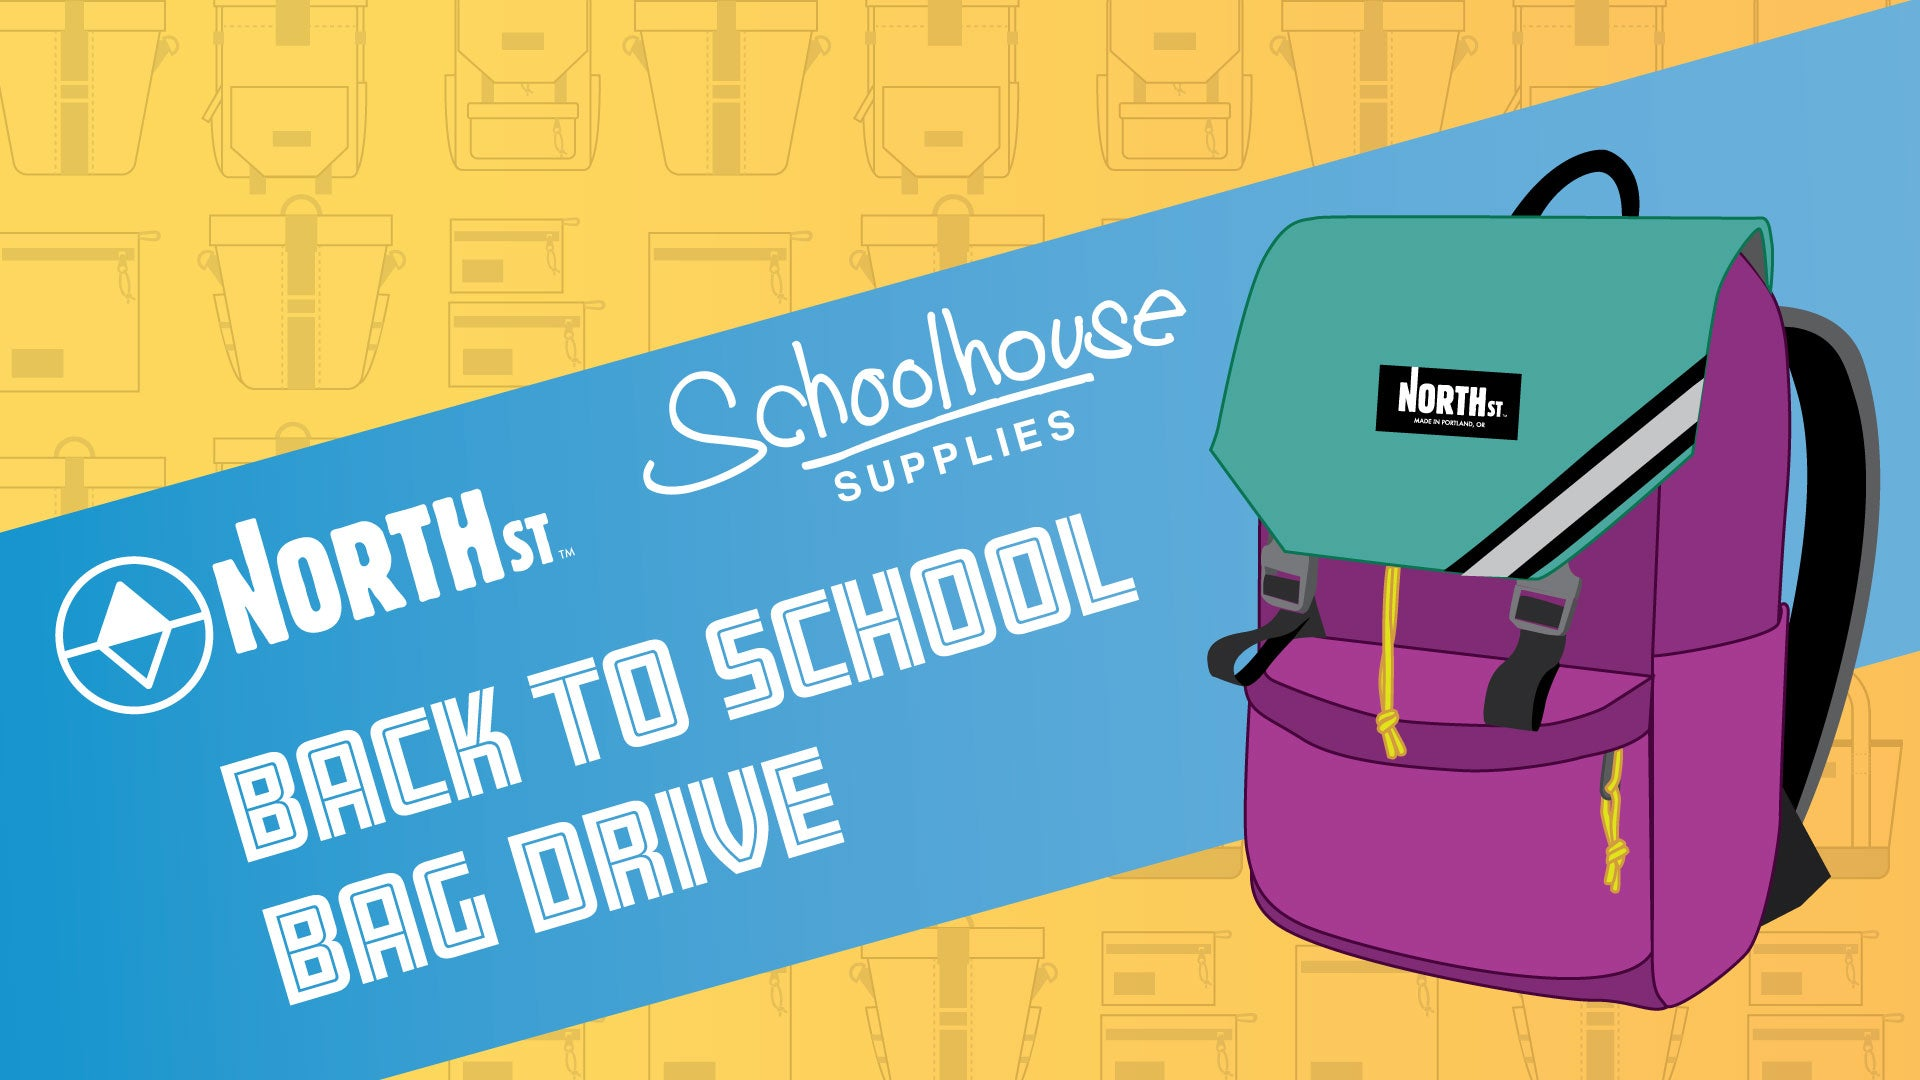 North St. // Schoolhouse Supplies Back to School Bag Drive